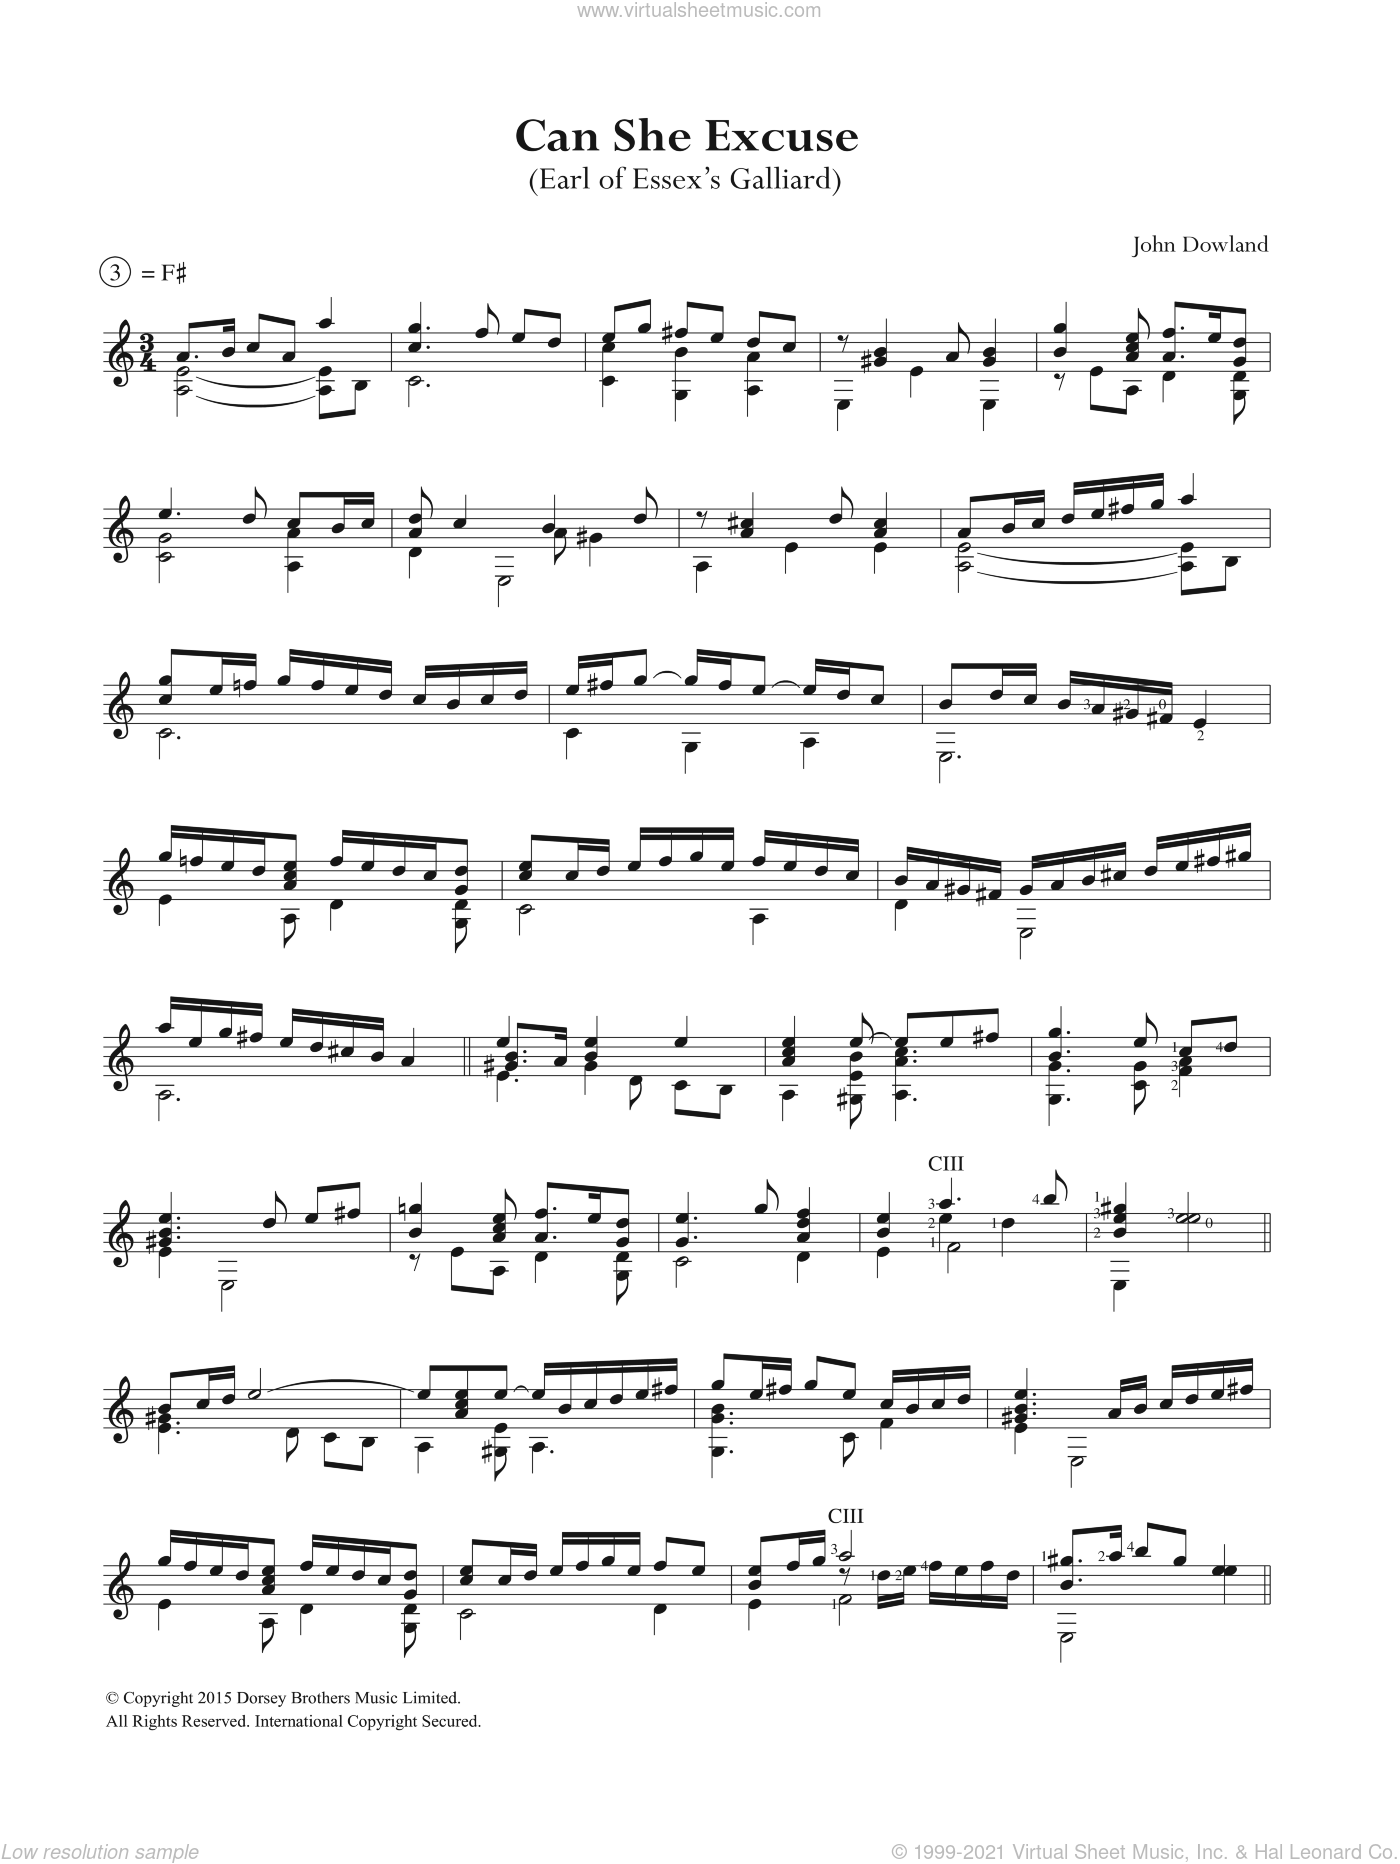 Can She Excuse sheet music for guitar solo (chords) by John Dowland